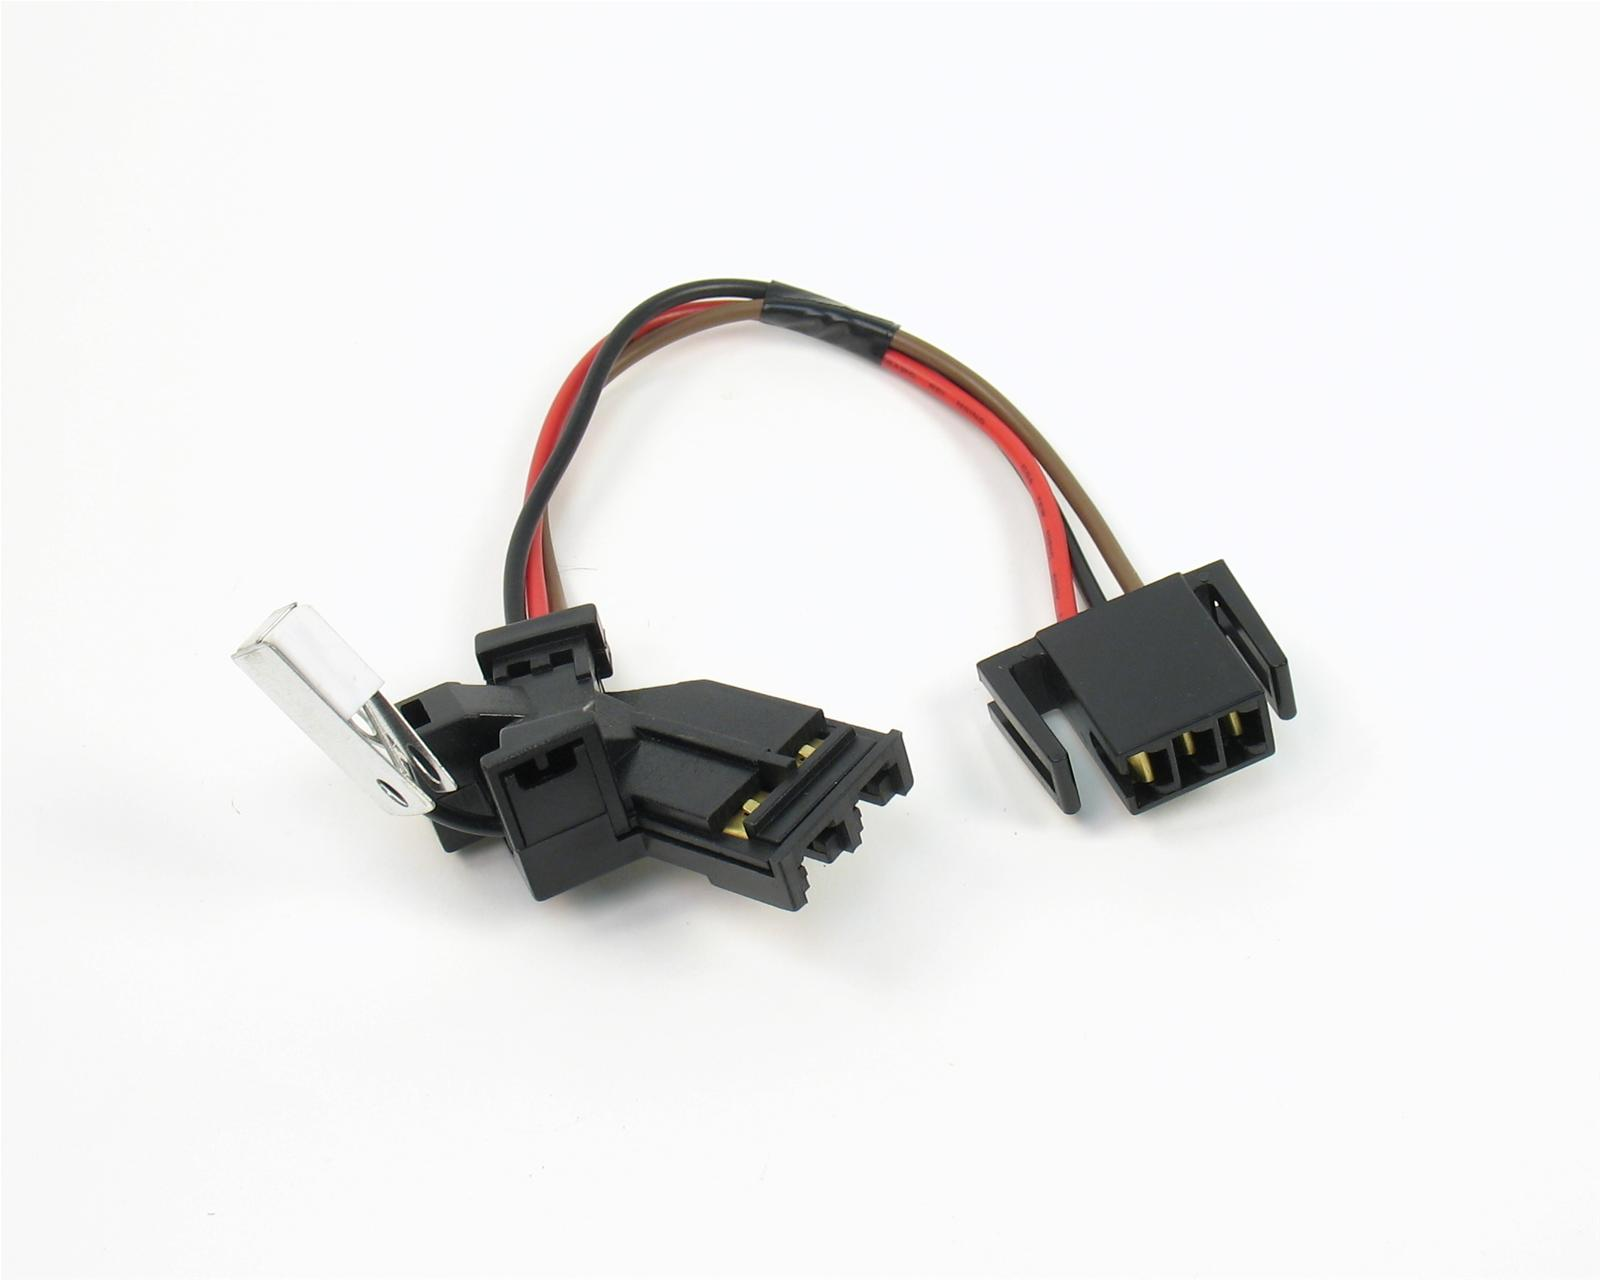 pnx d9007_xl pertronix flame thrower hei ignition module wiring harnesses d9007 hei wiring harness at gsmx.co